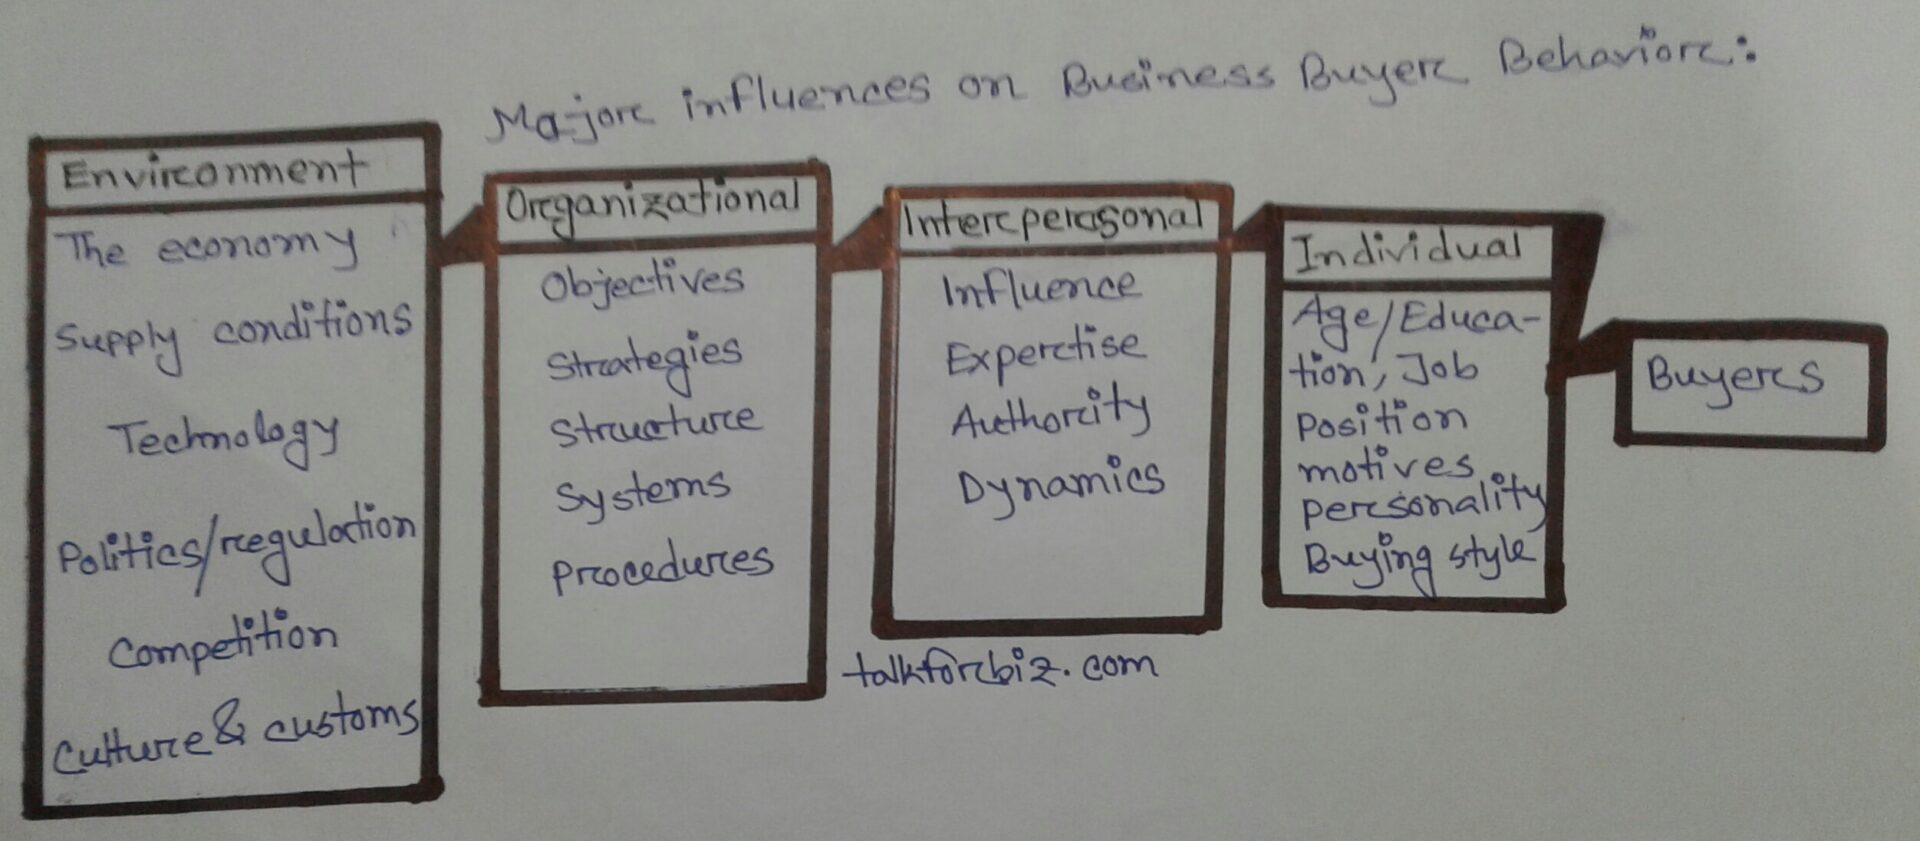 Identify the major factors that influence business buyer